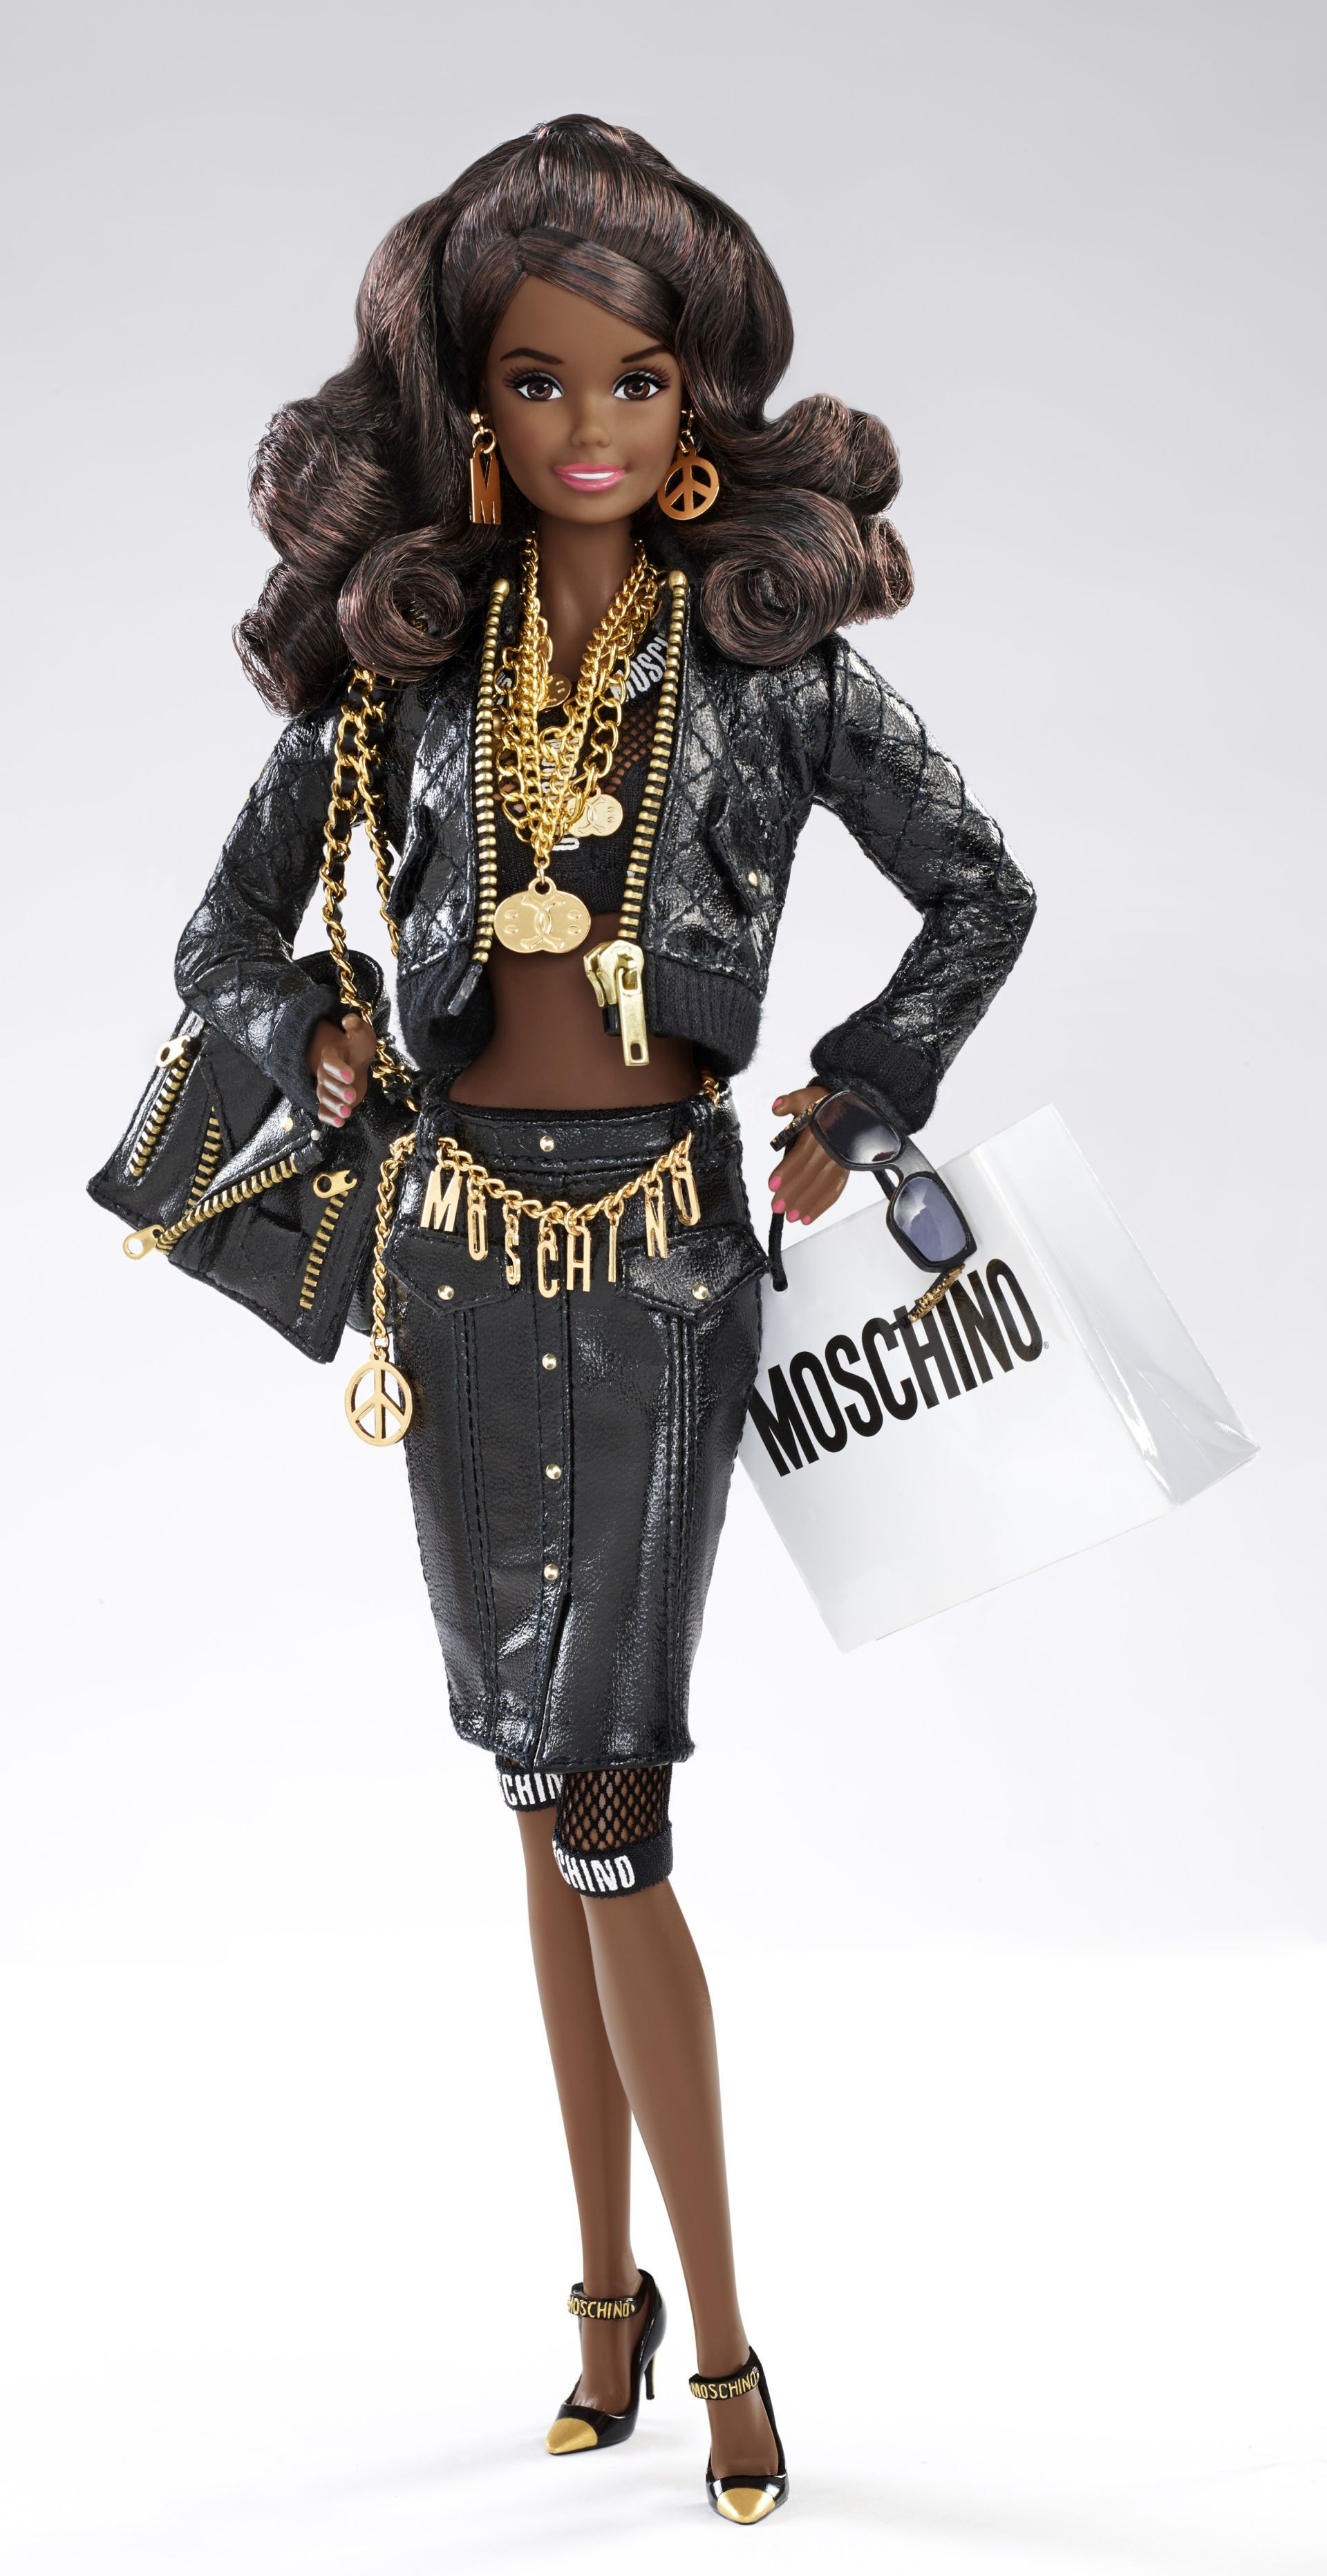 moschino barbie black leather - Google Search